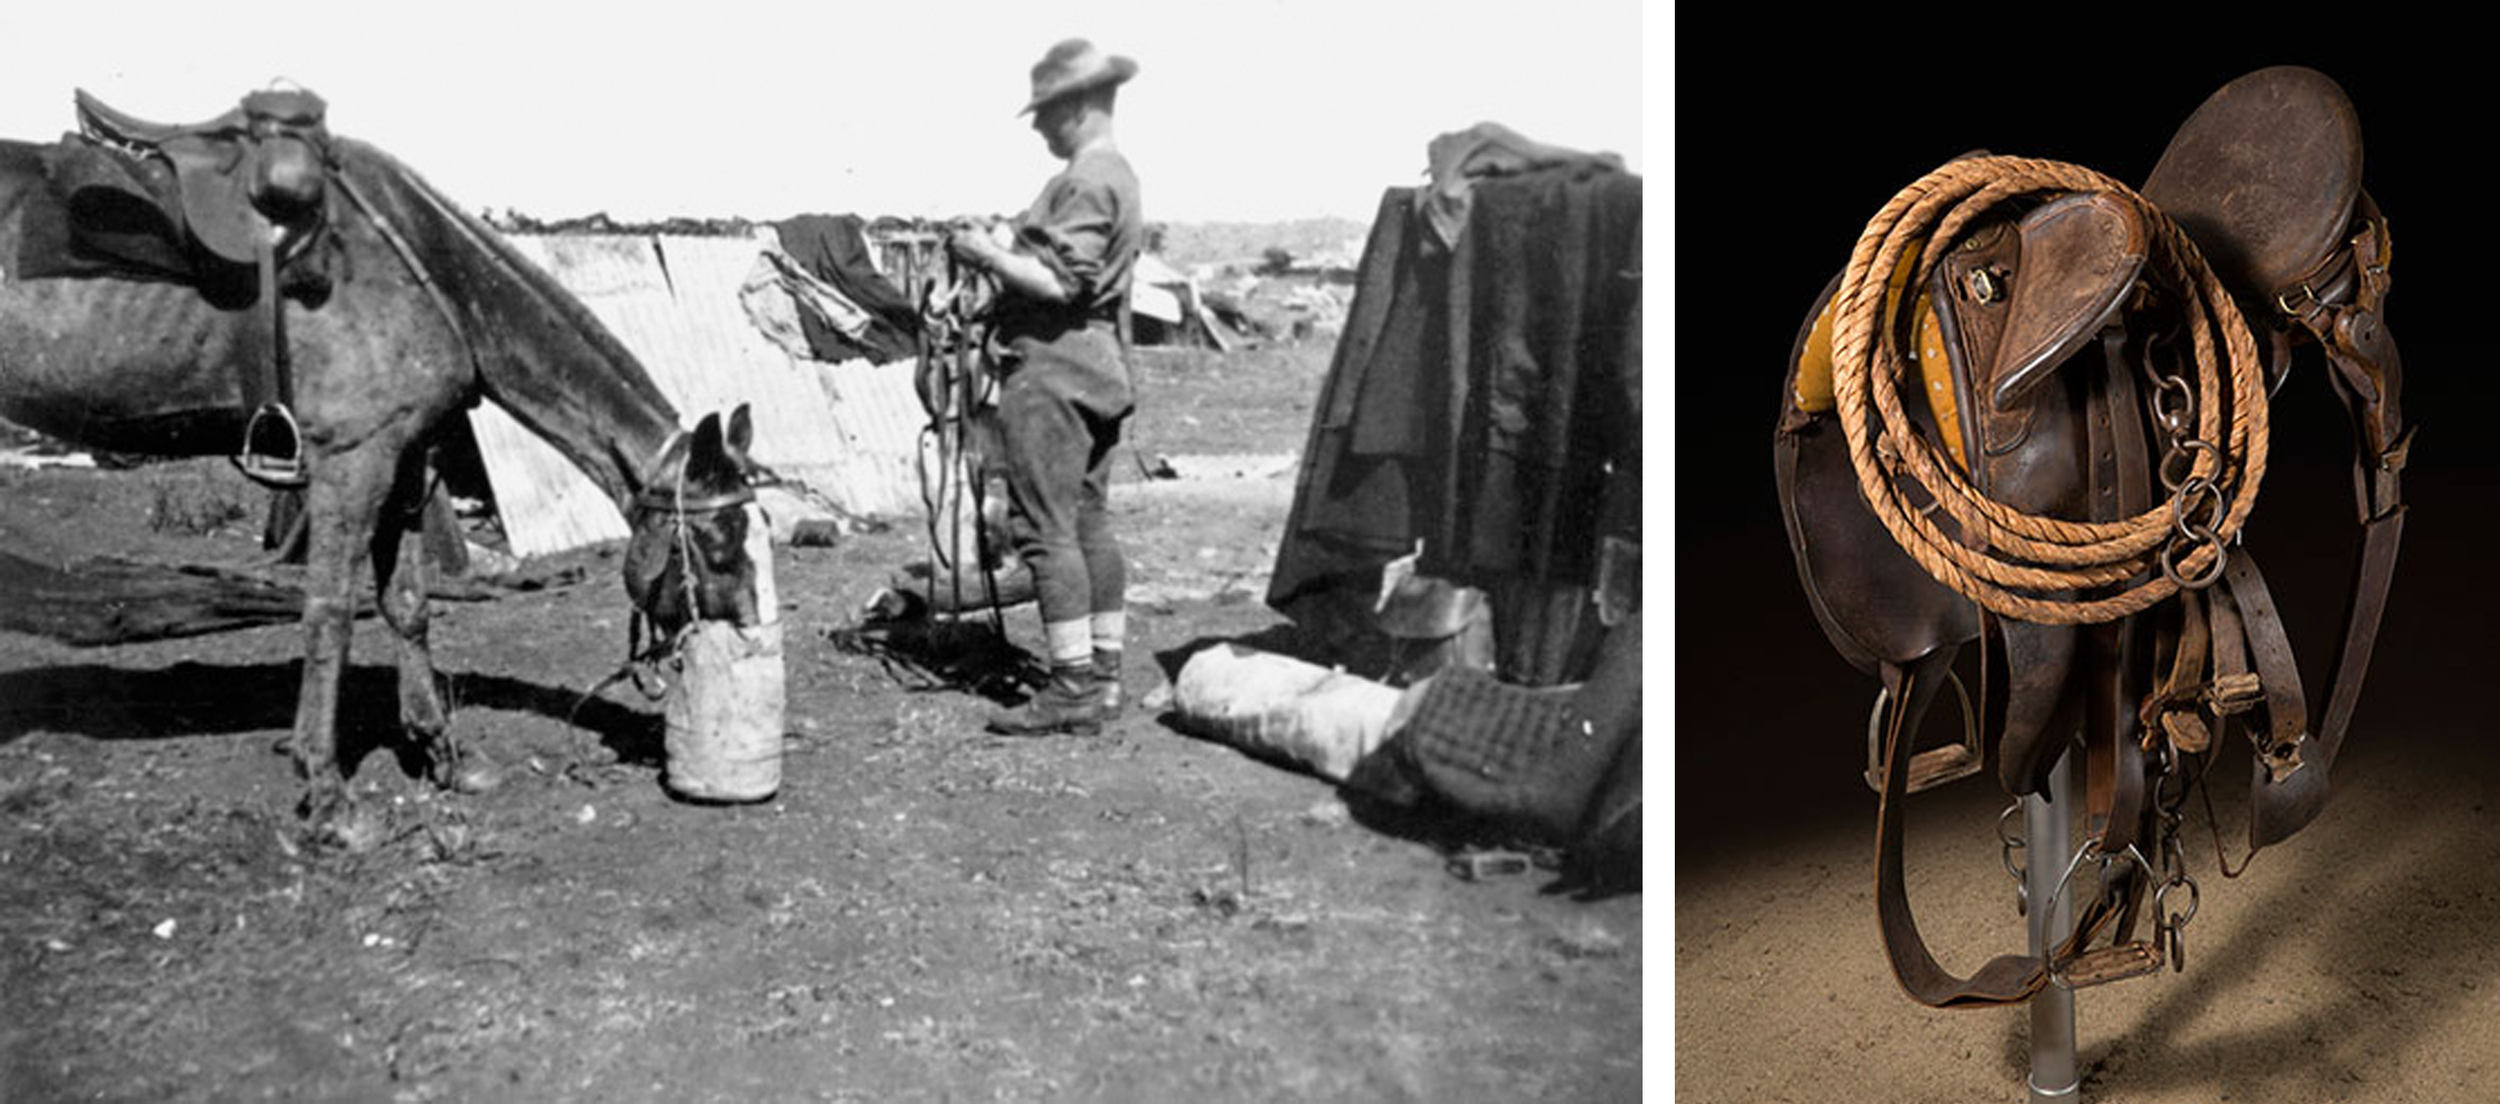 Soldier and horse in the Boar War (left). Ted Fogarty's Syd Hill saddle (right).